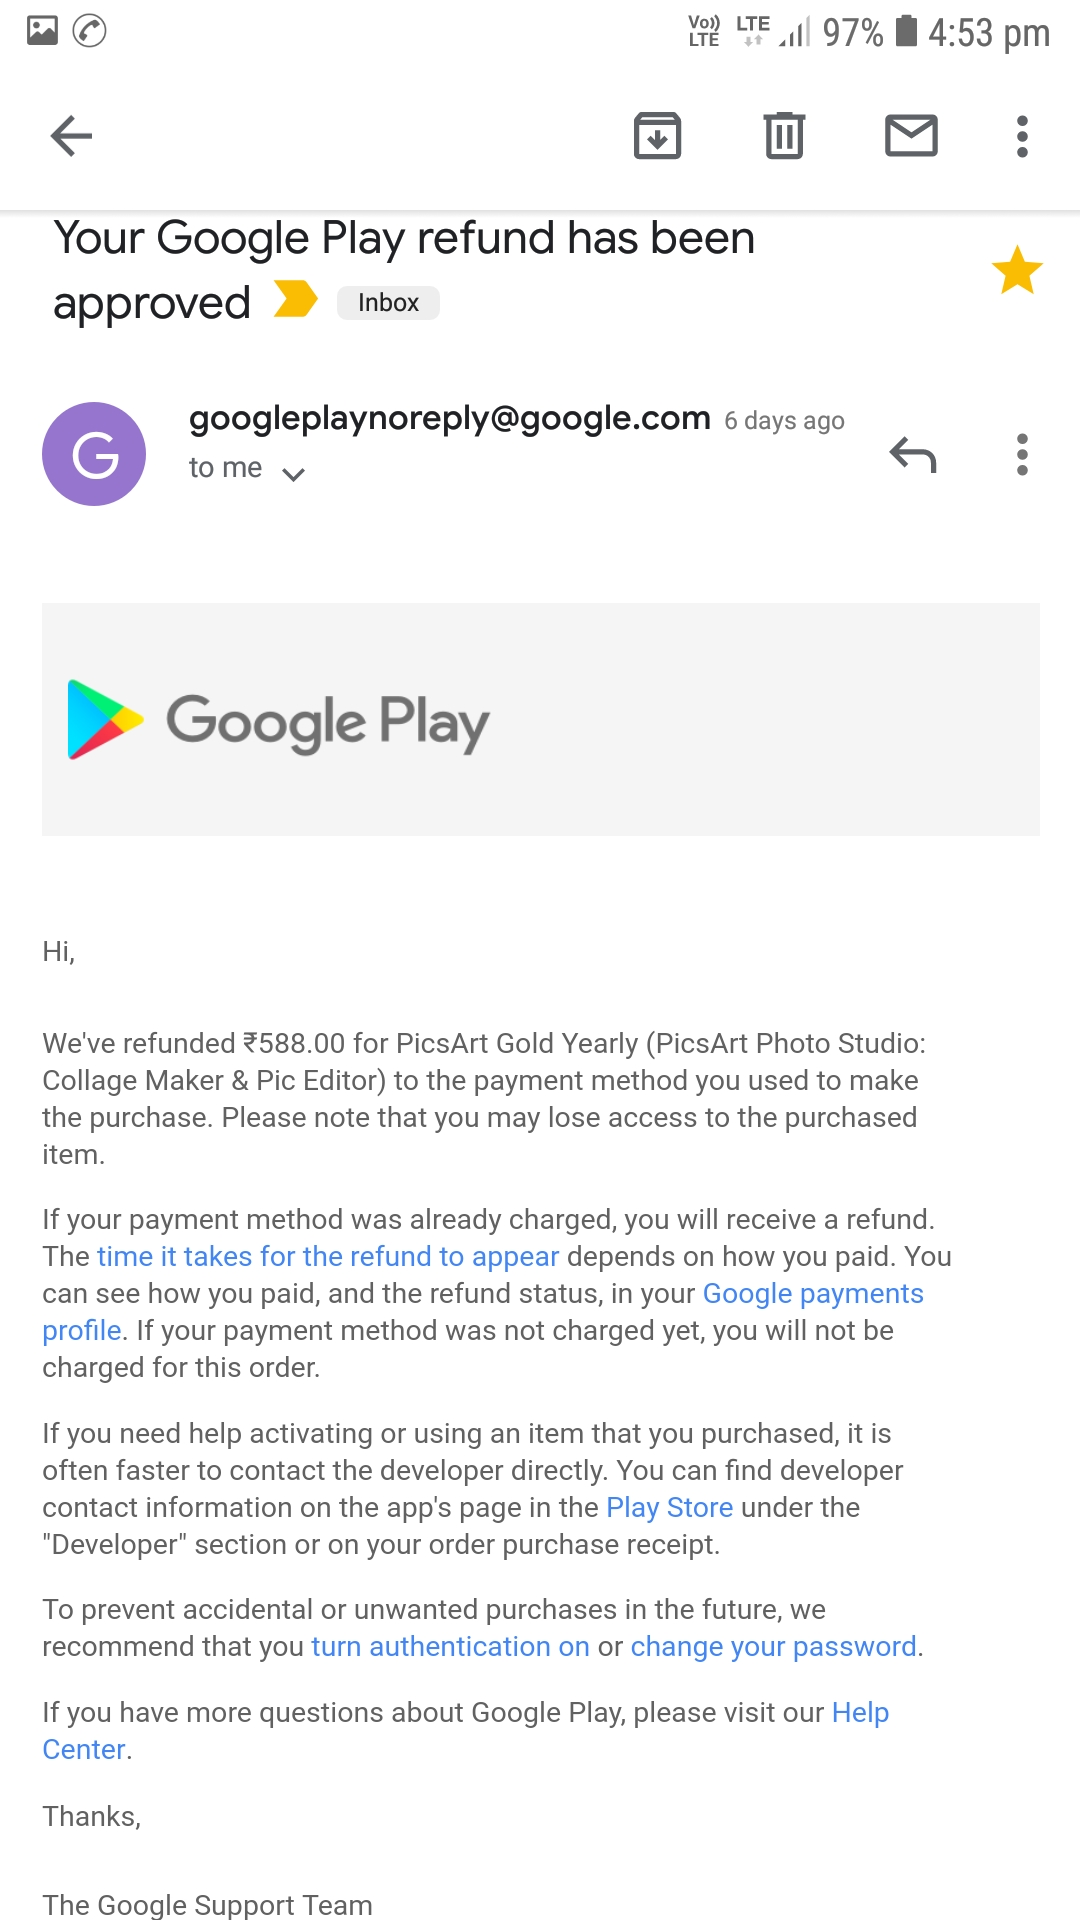 Why debited was not refunded to my account - Google Play Help